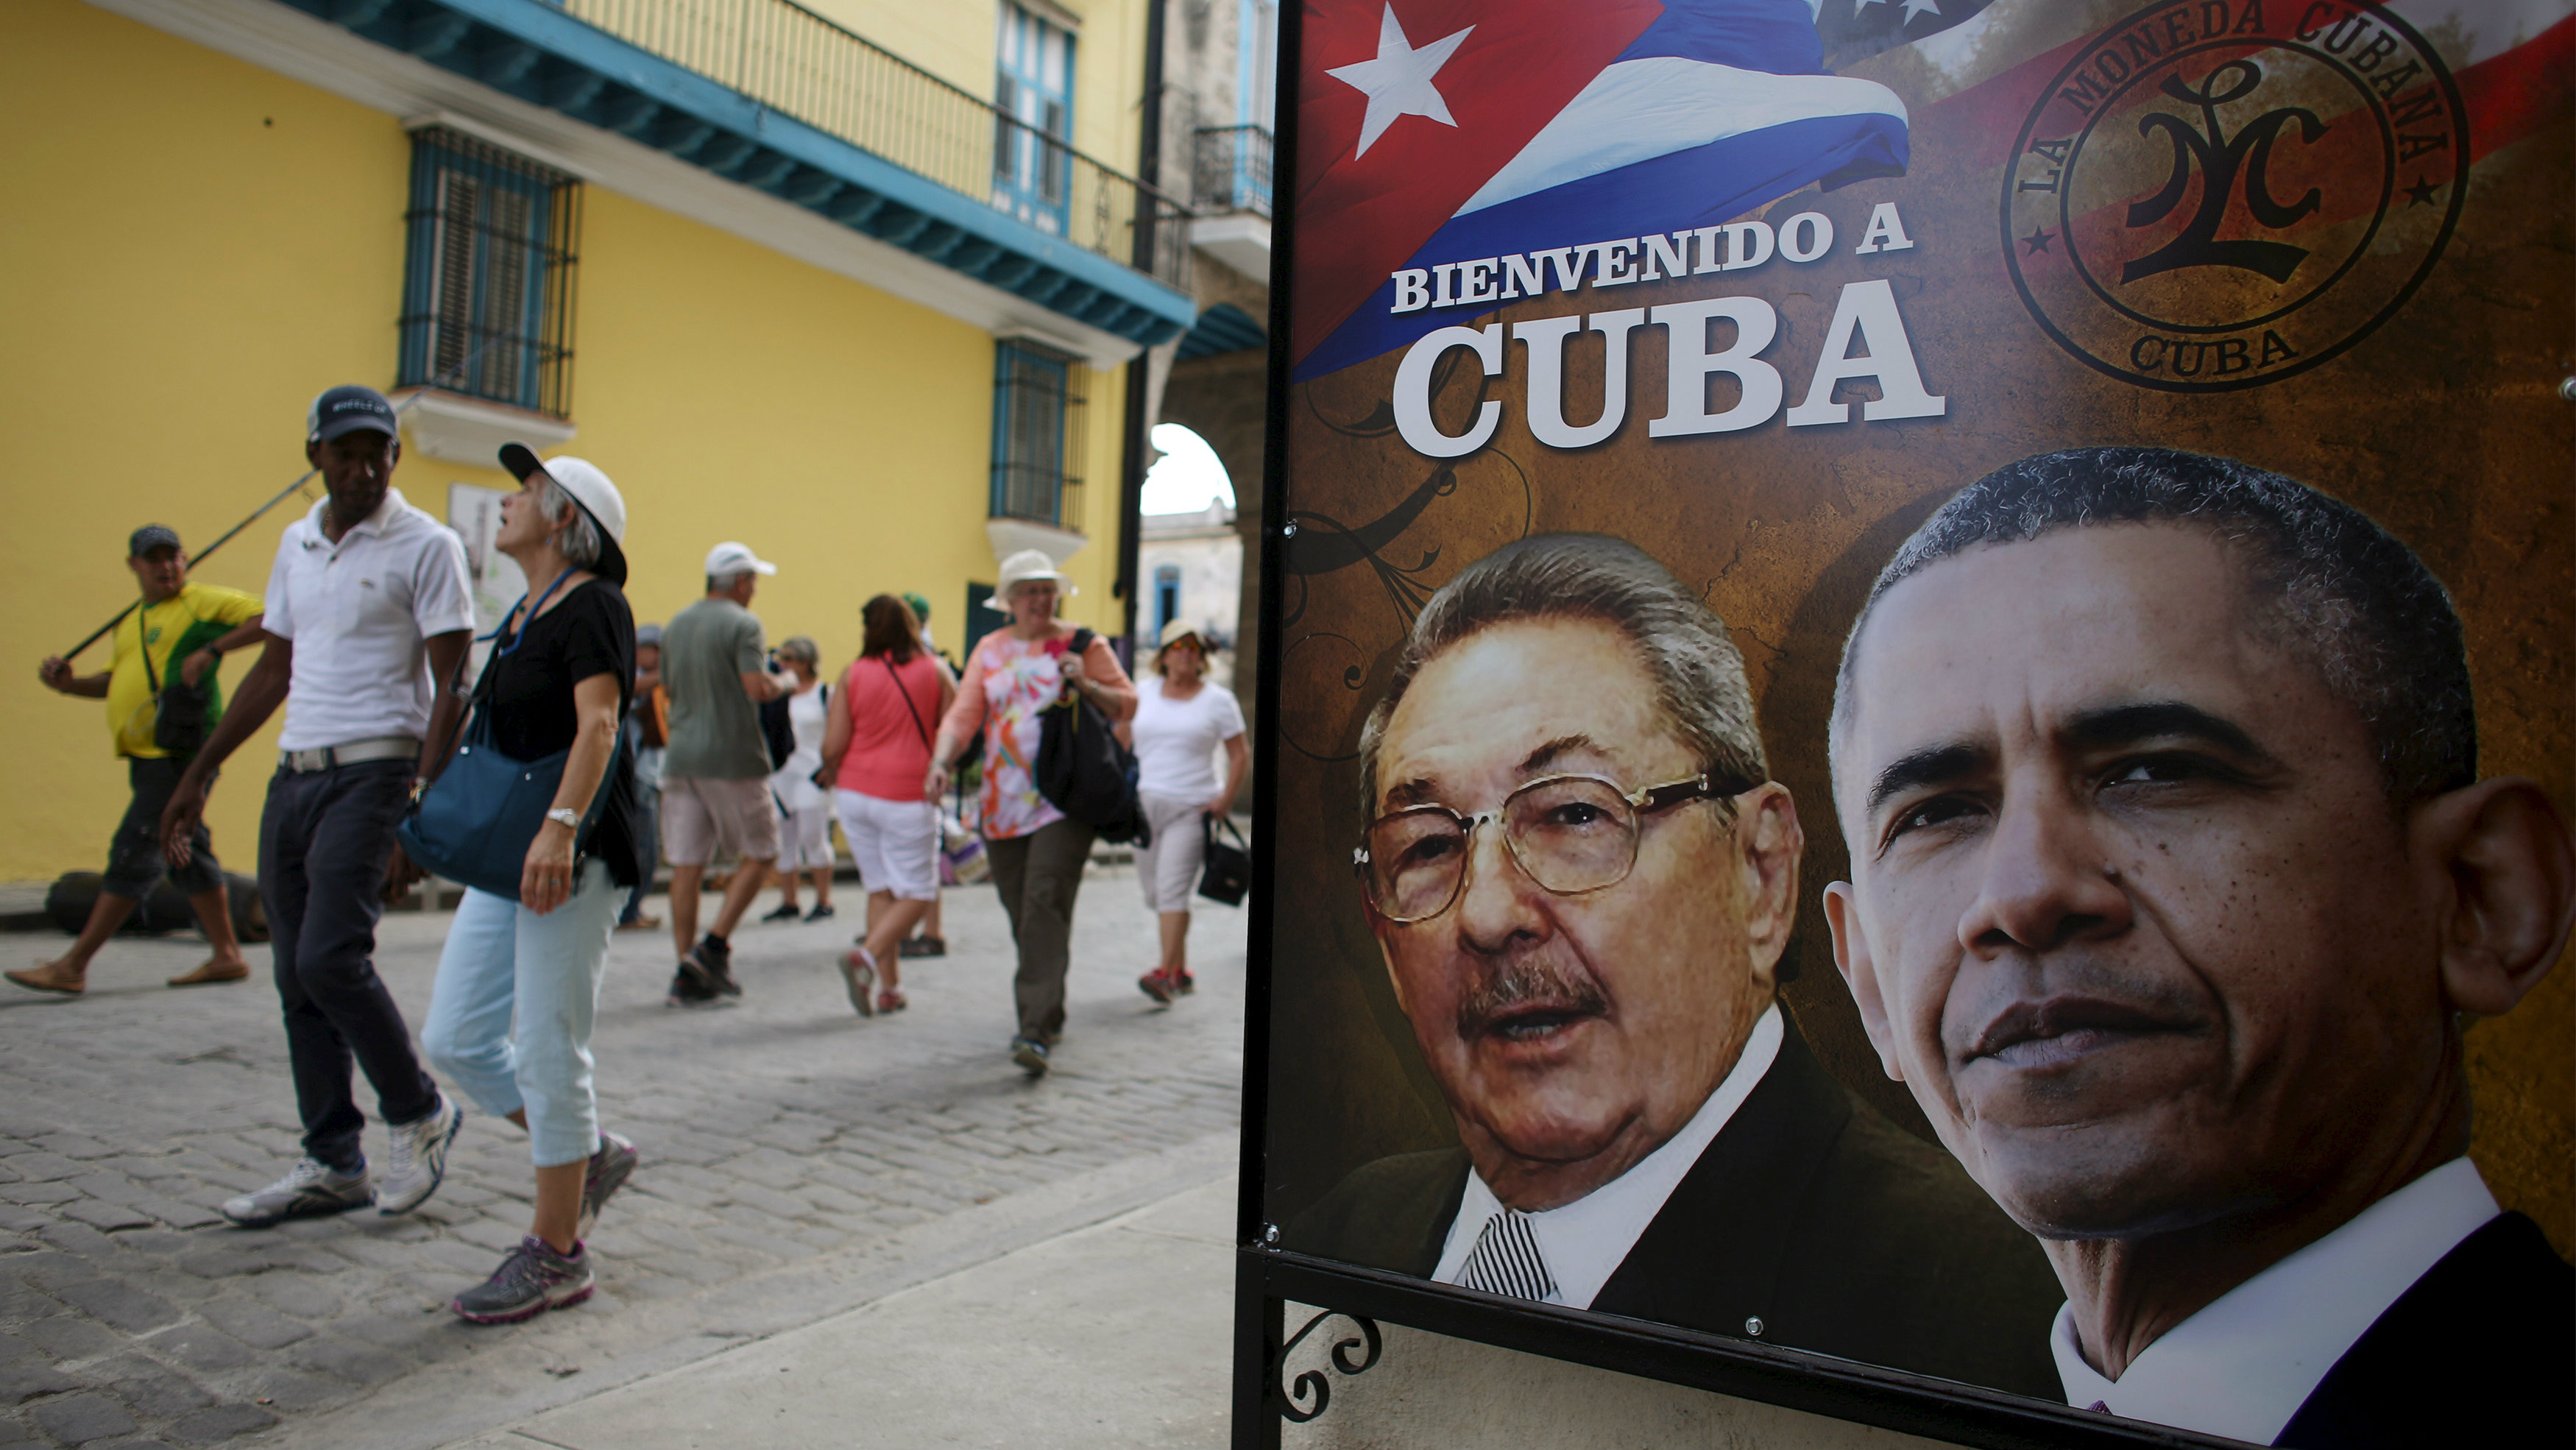 Cuba welcomes President Obama